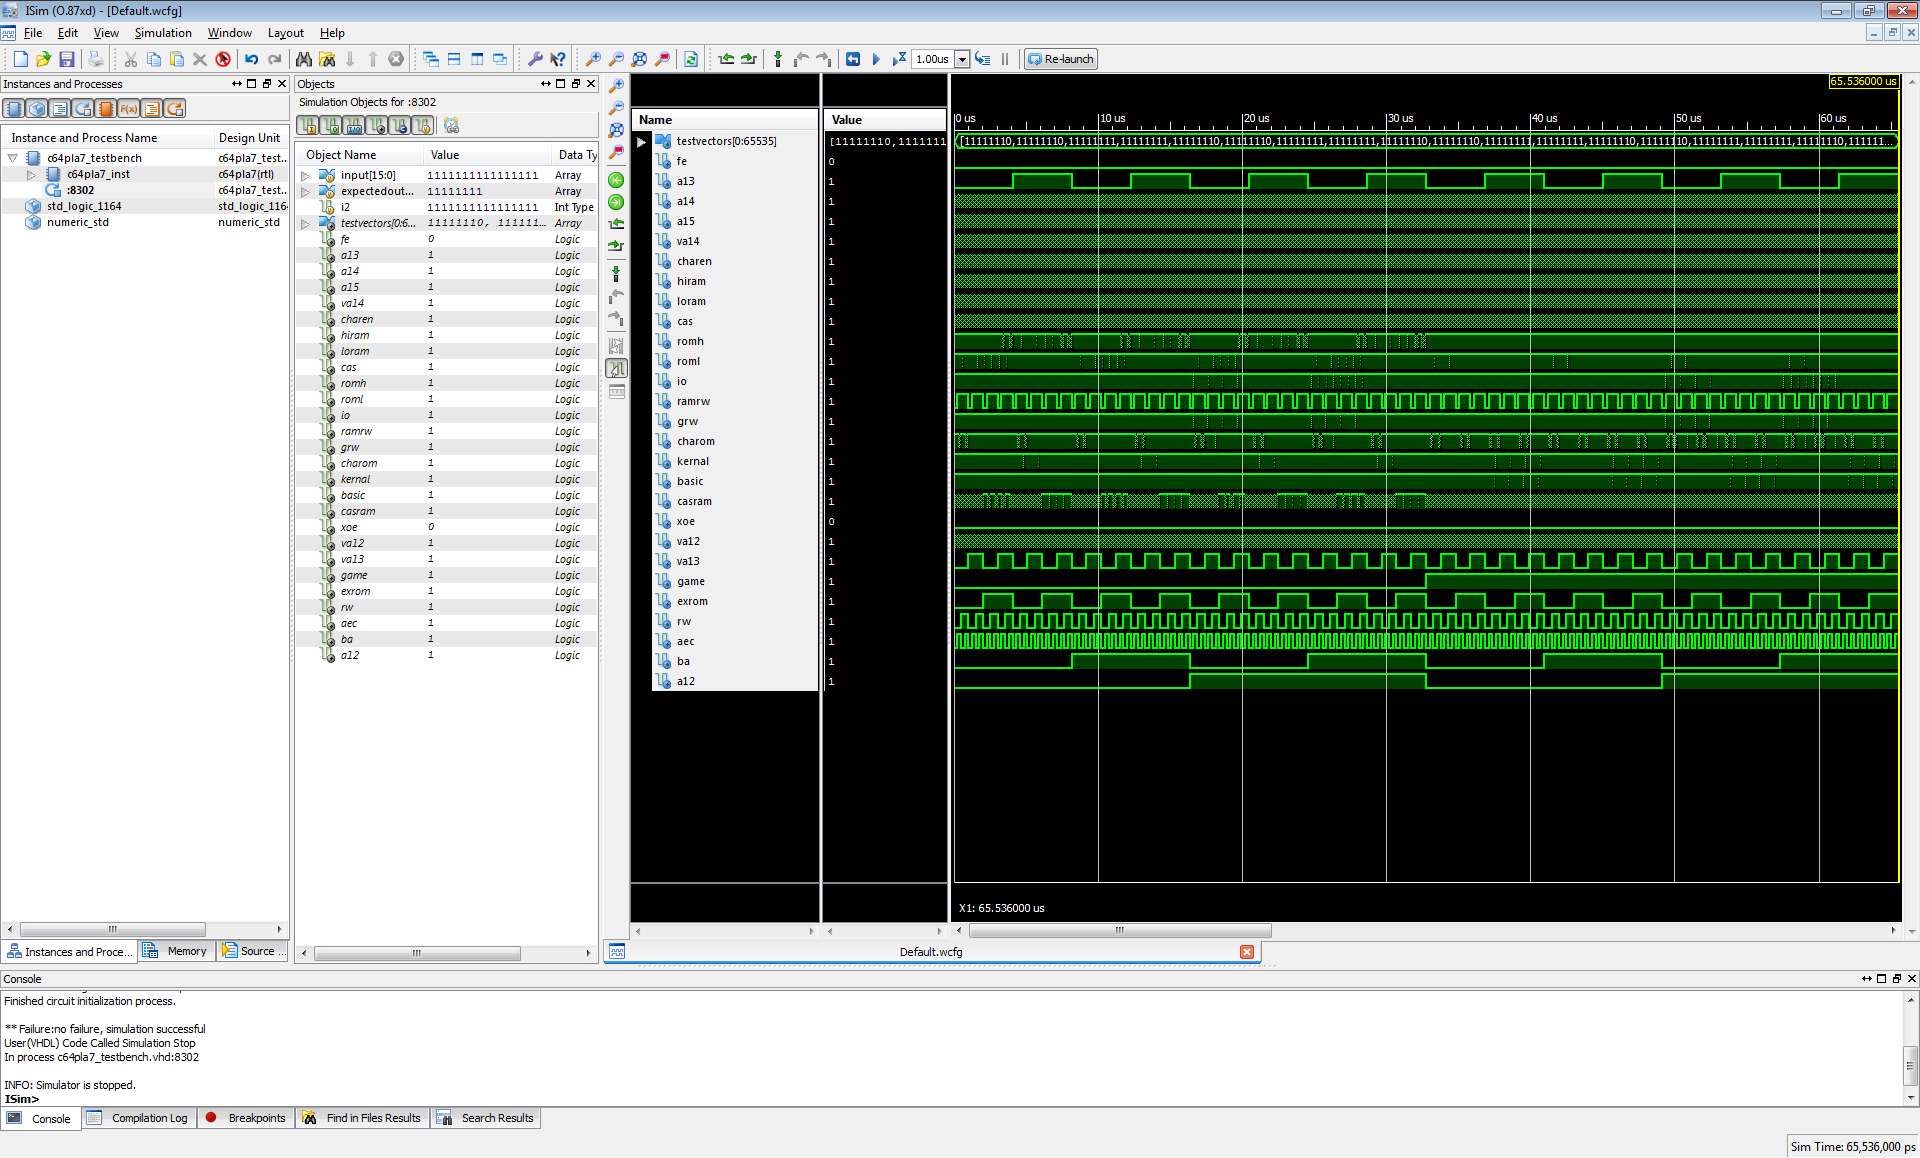 C64 PLA implemented in VHDL